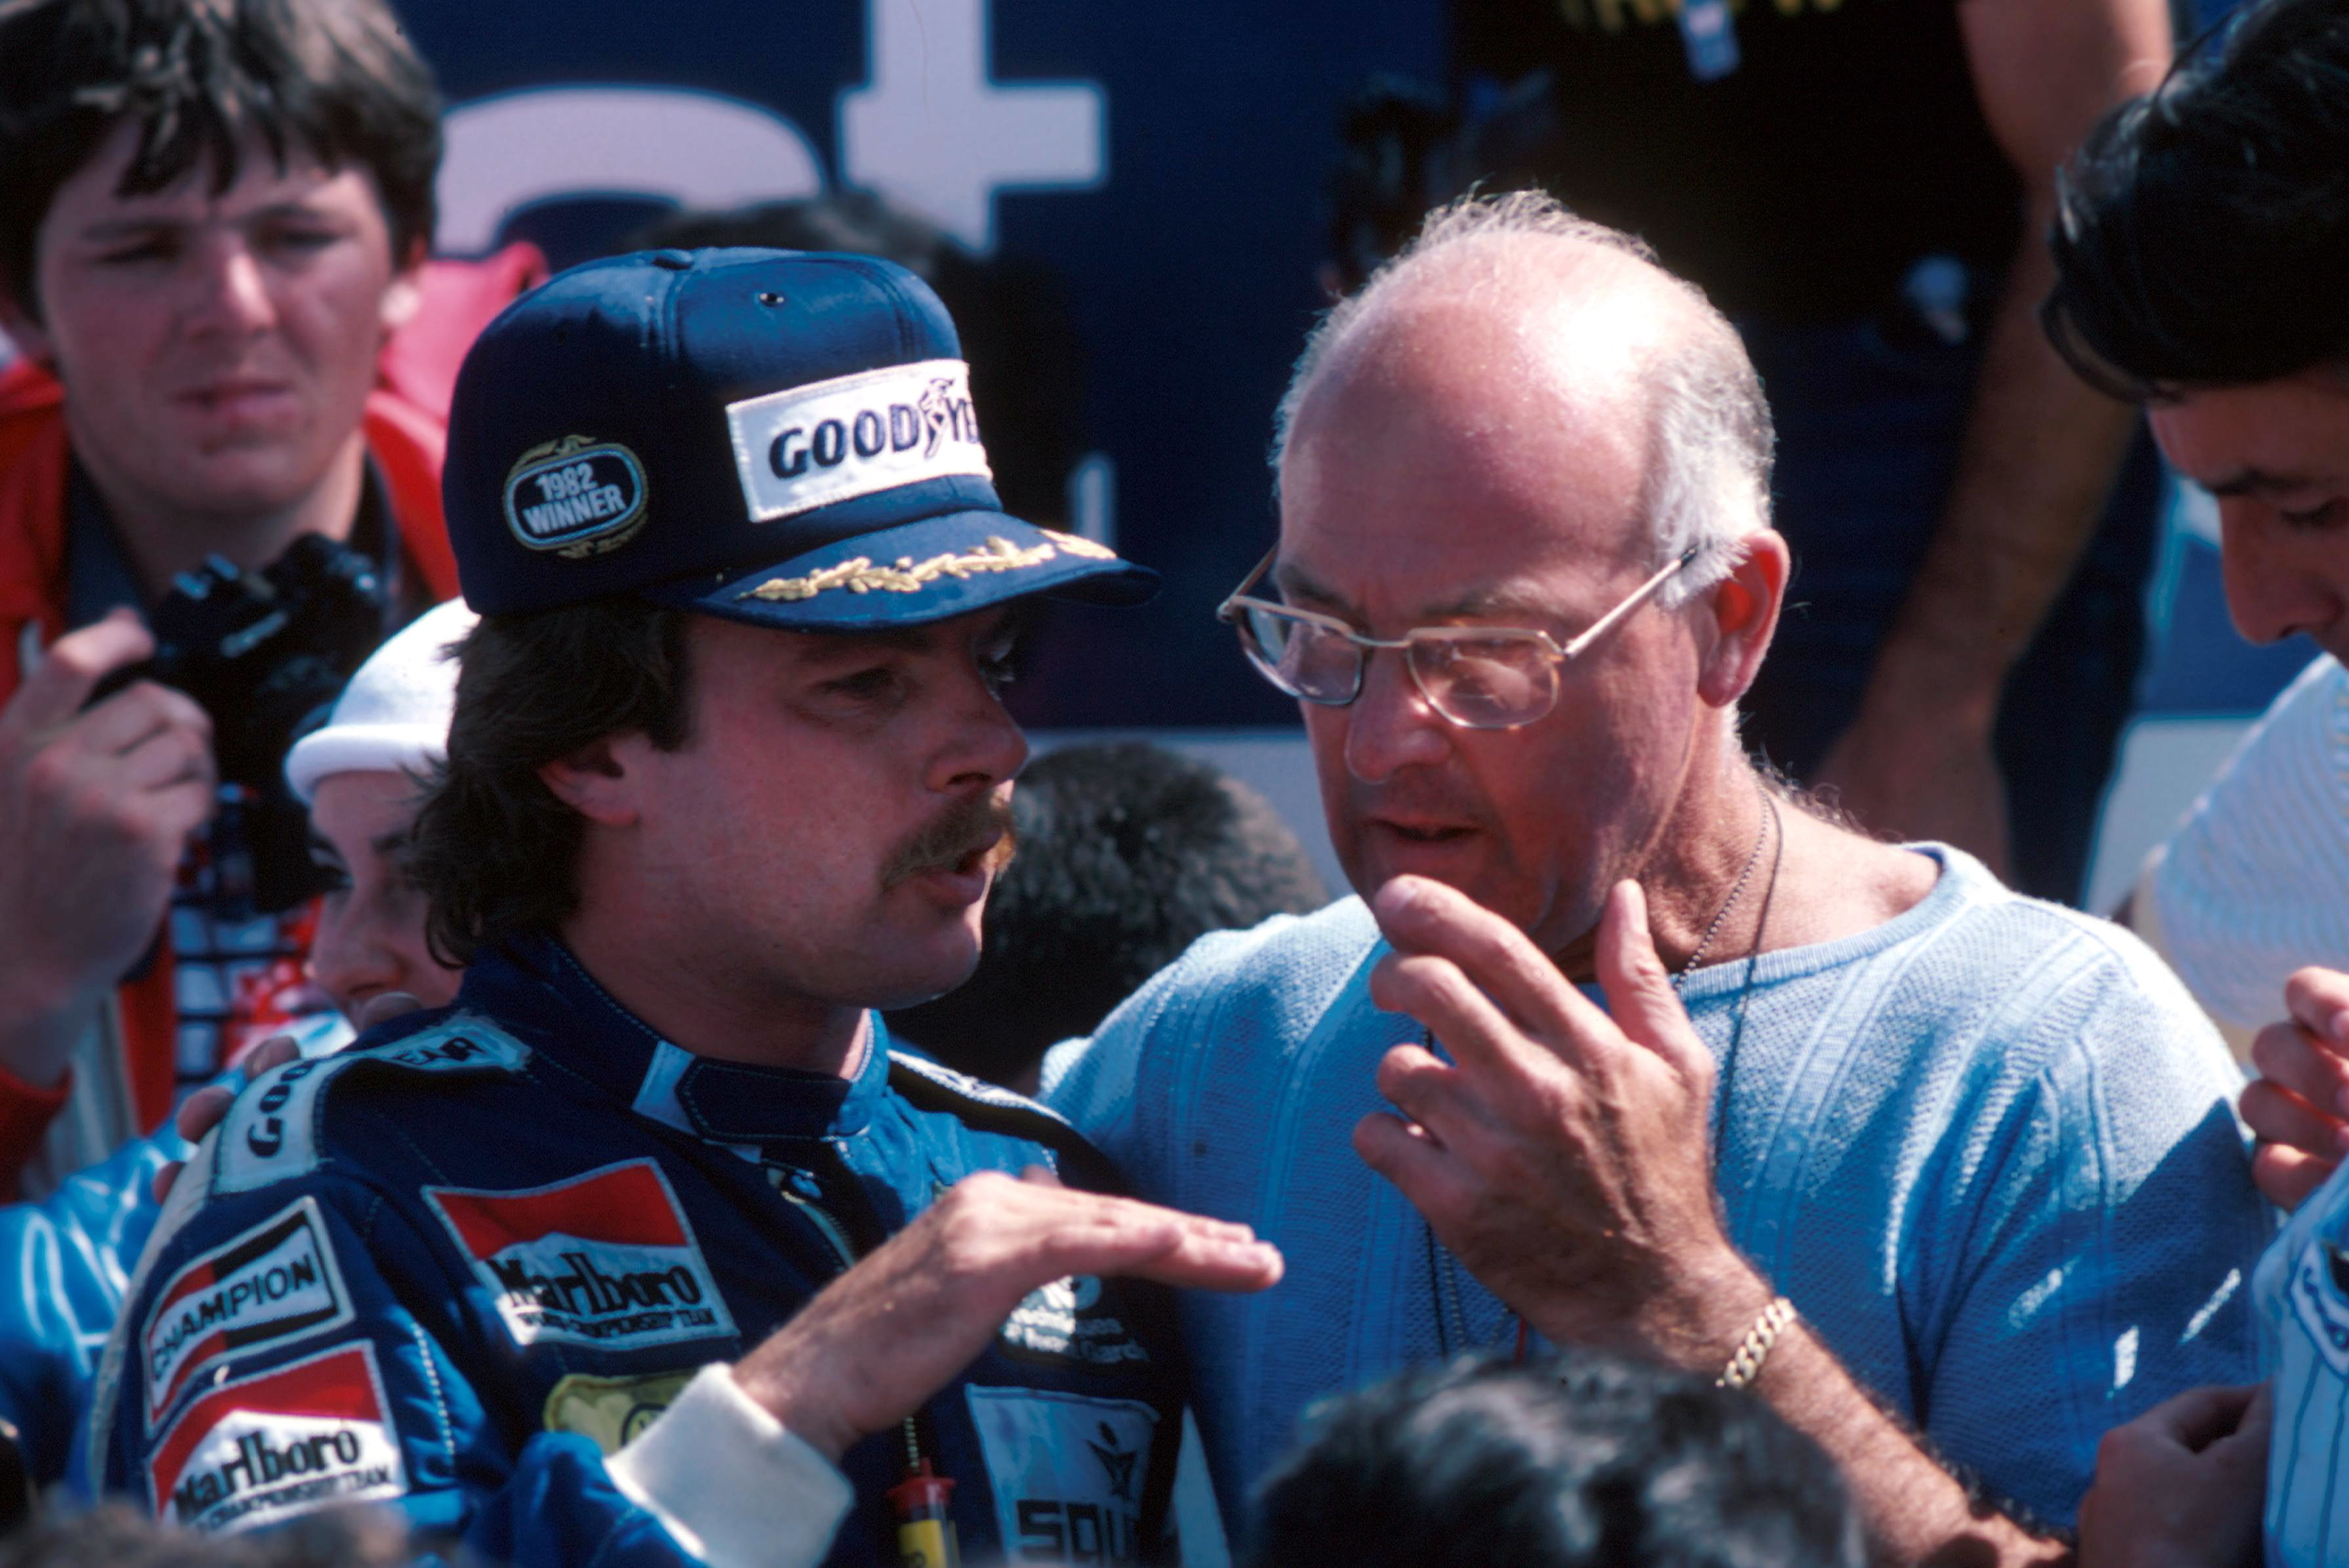 Walker's work in F1 became all-consuming